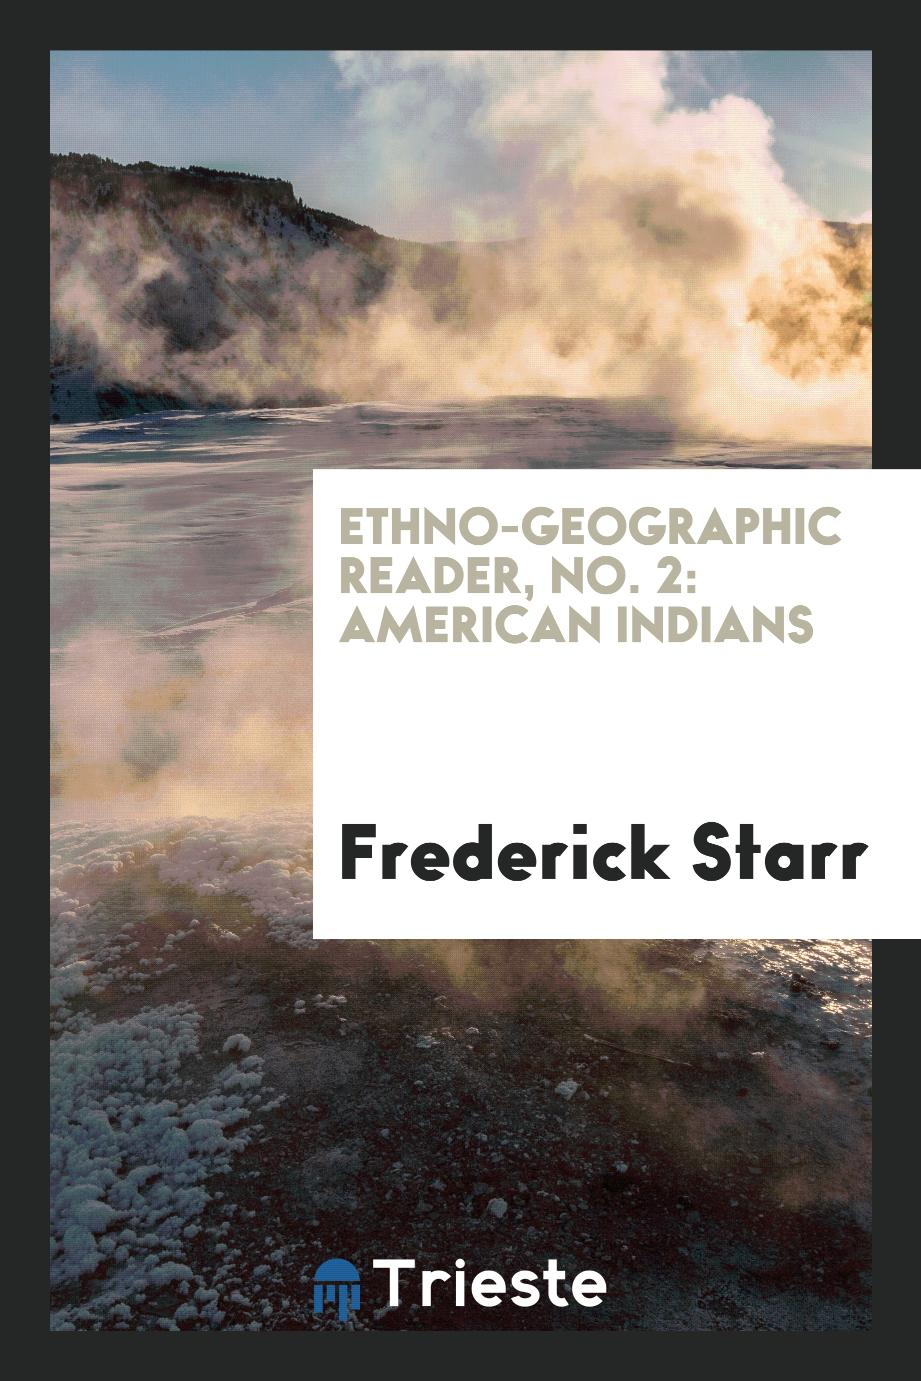 Ethno-Geographic Reader, No. 2: American Indians